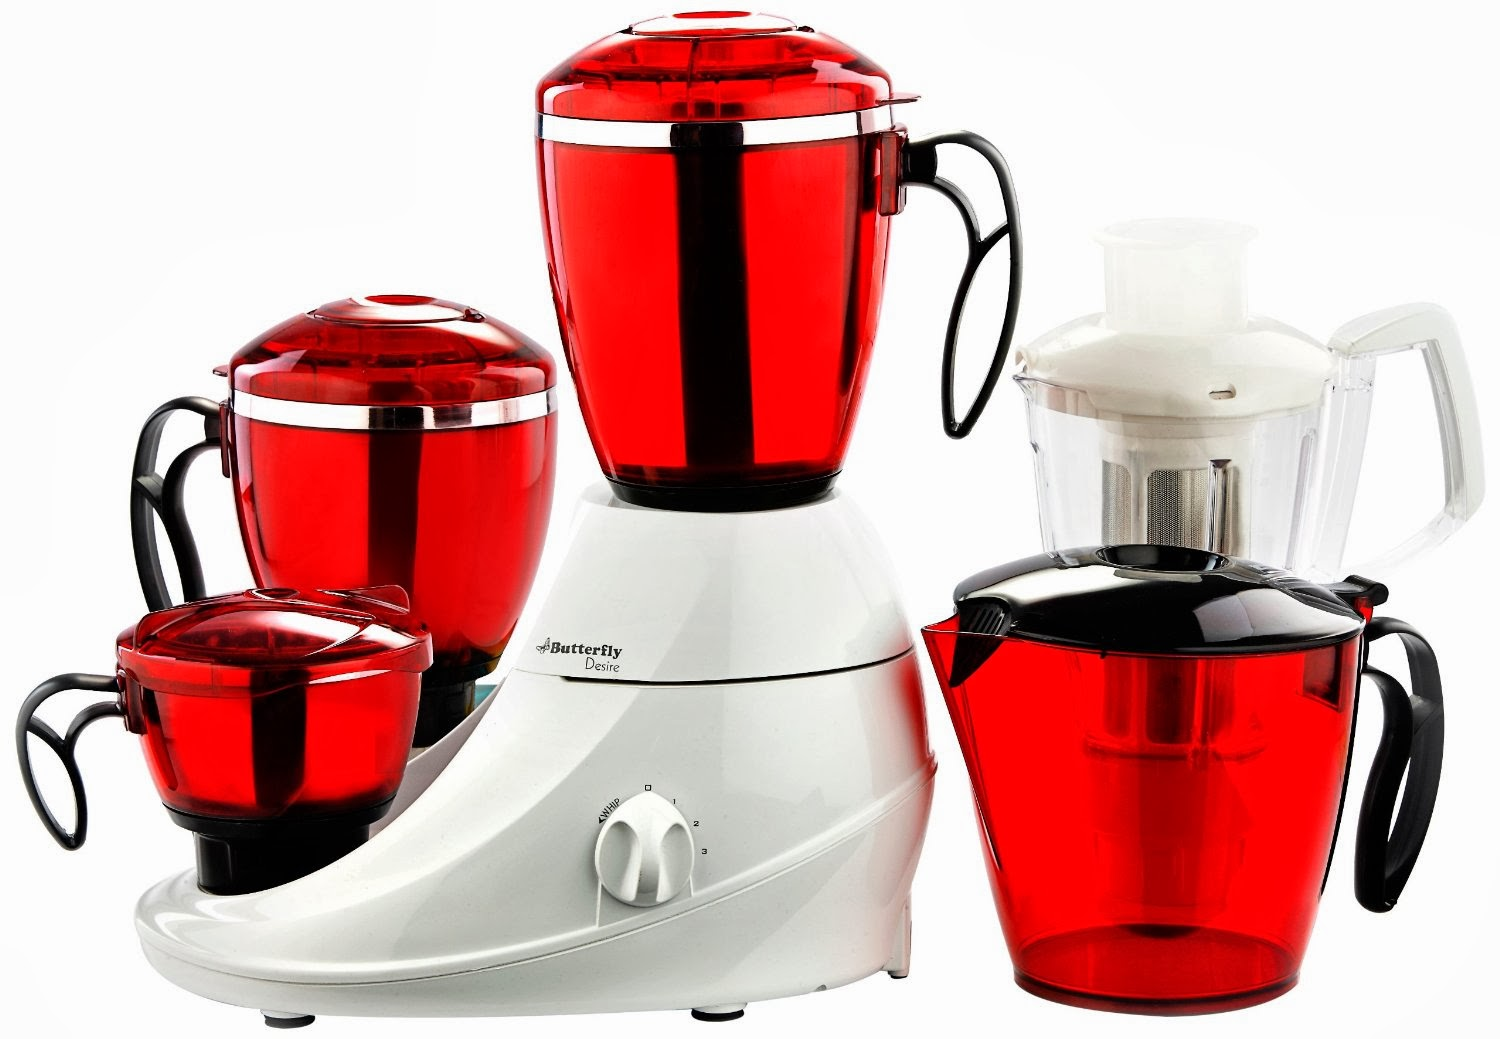 marvelous Indian Kitchen Appliances #3: Indian Mixer Grinder in the USA: The Best Kitchen Appliances for Foodies